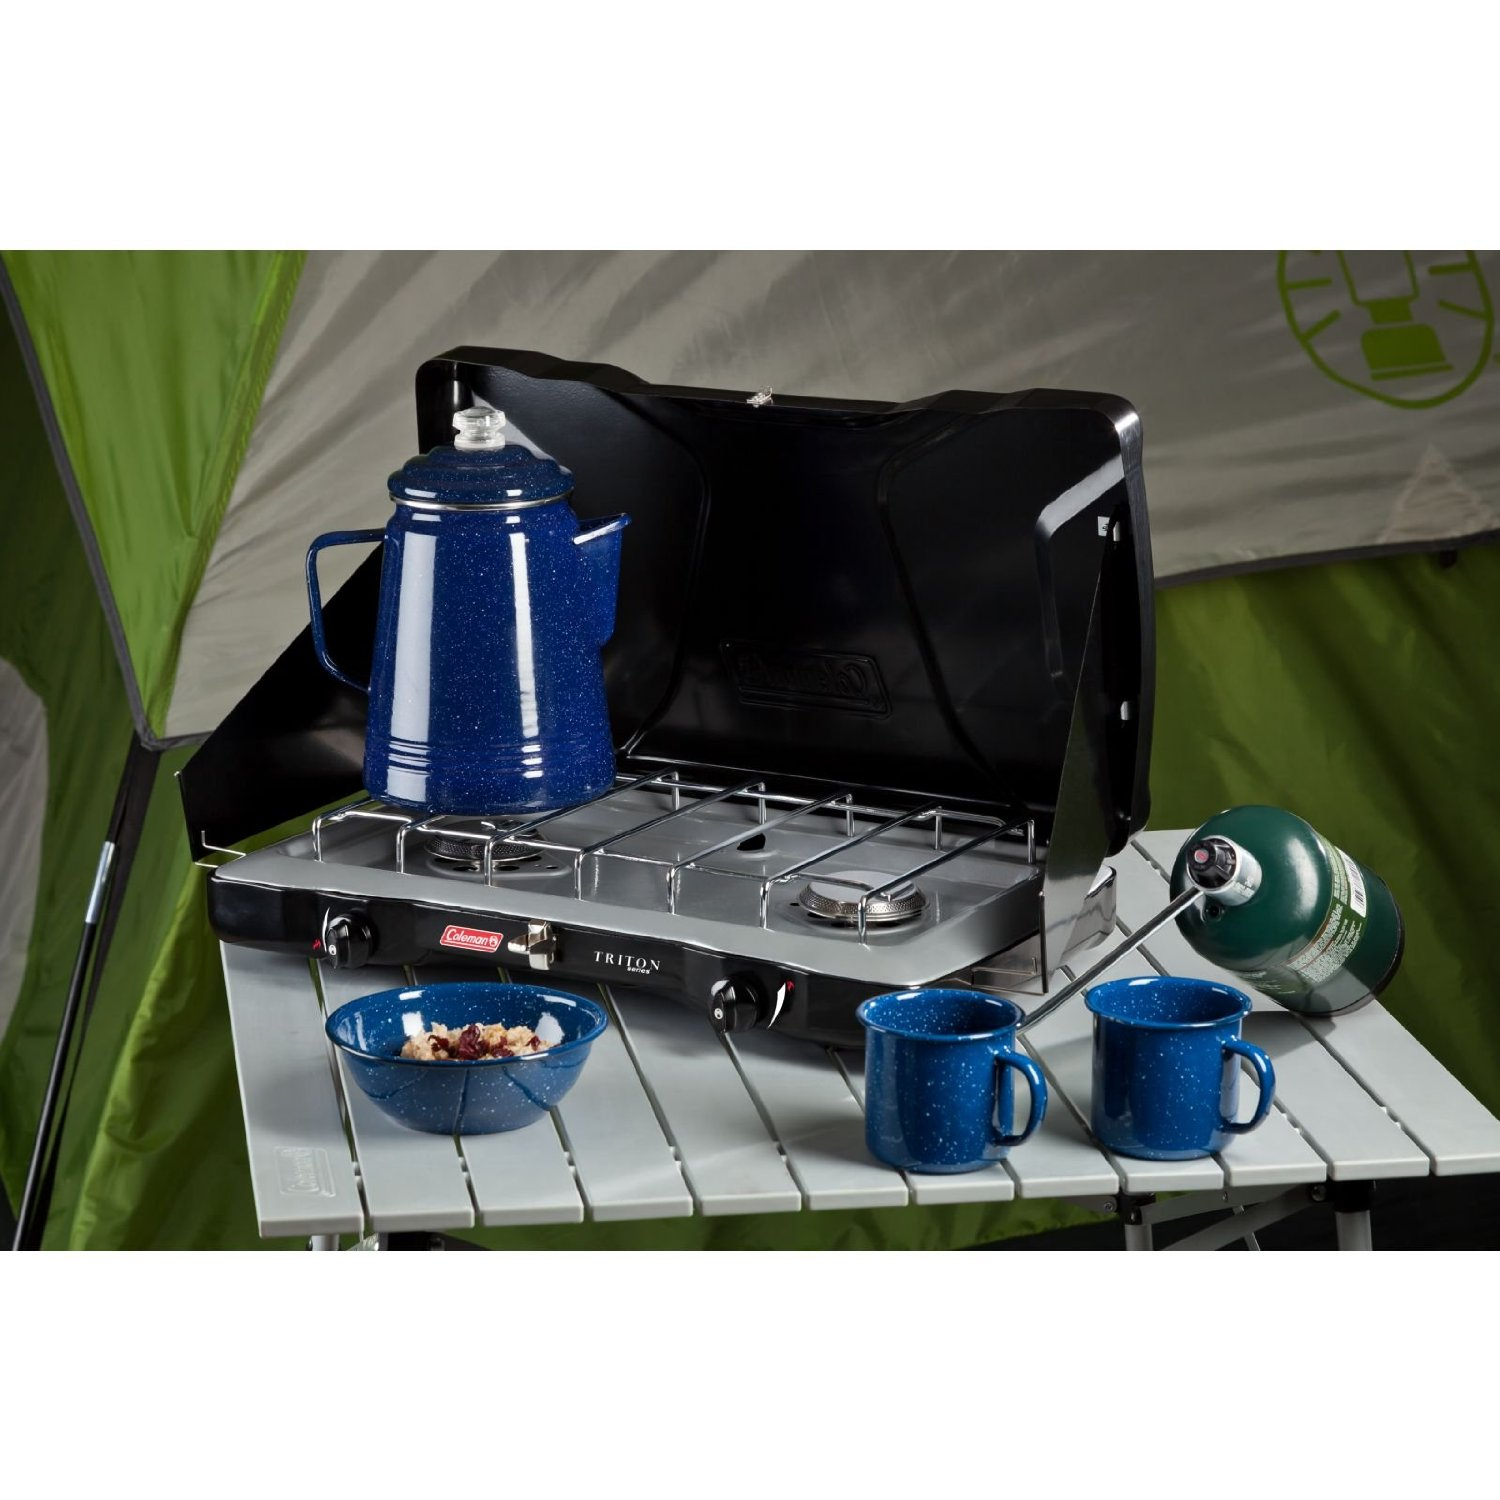 camping stoves, fathers day gifts